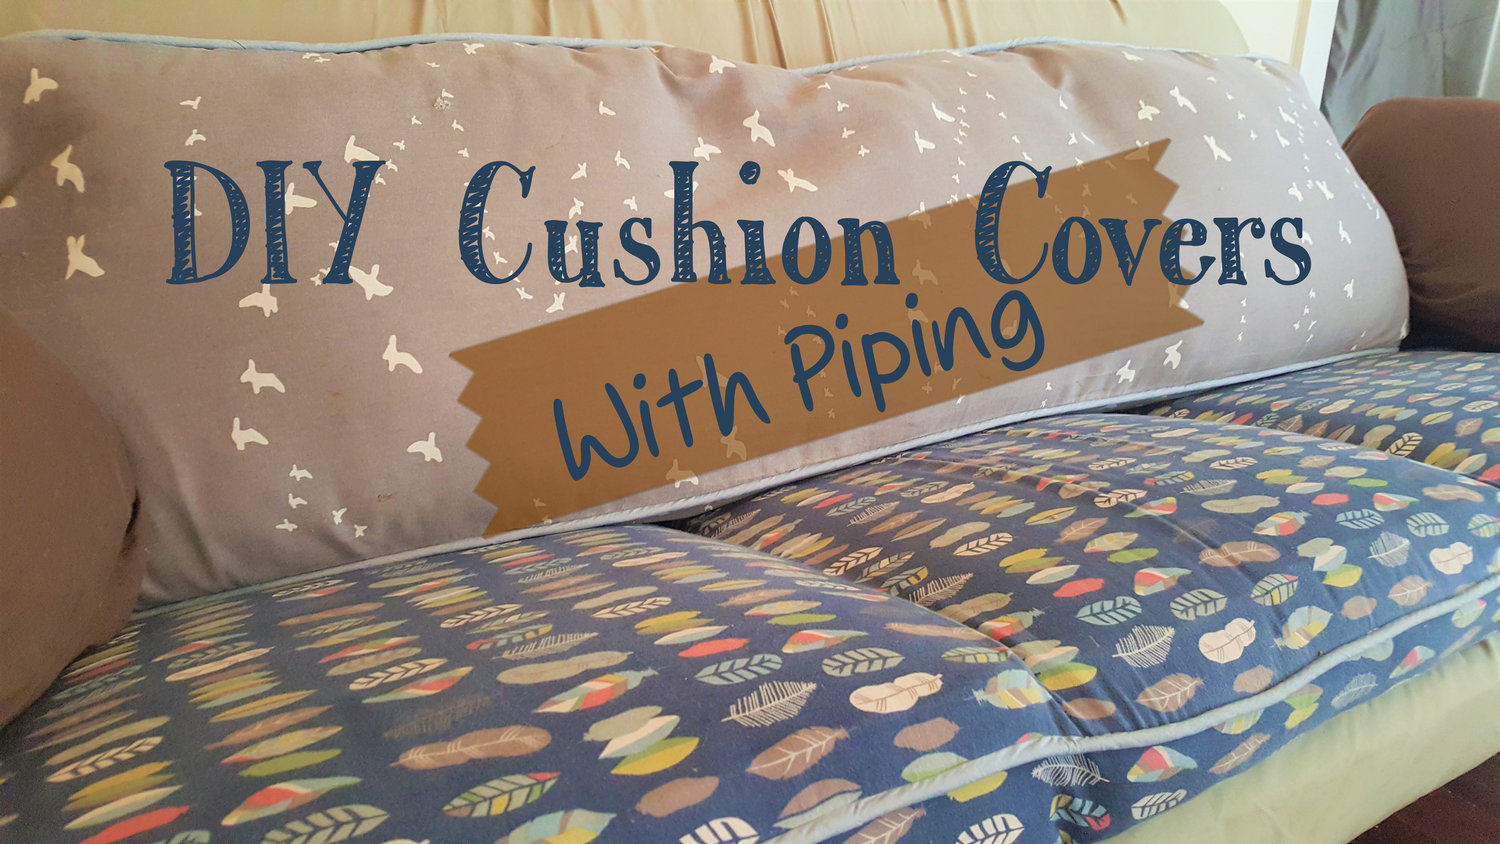 Diy Cushion Covers With Piping Whimsy Scribble